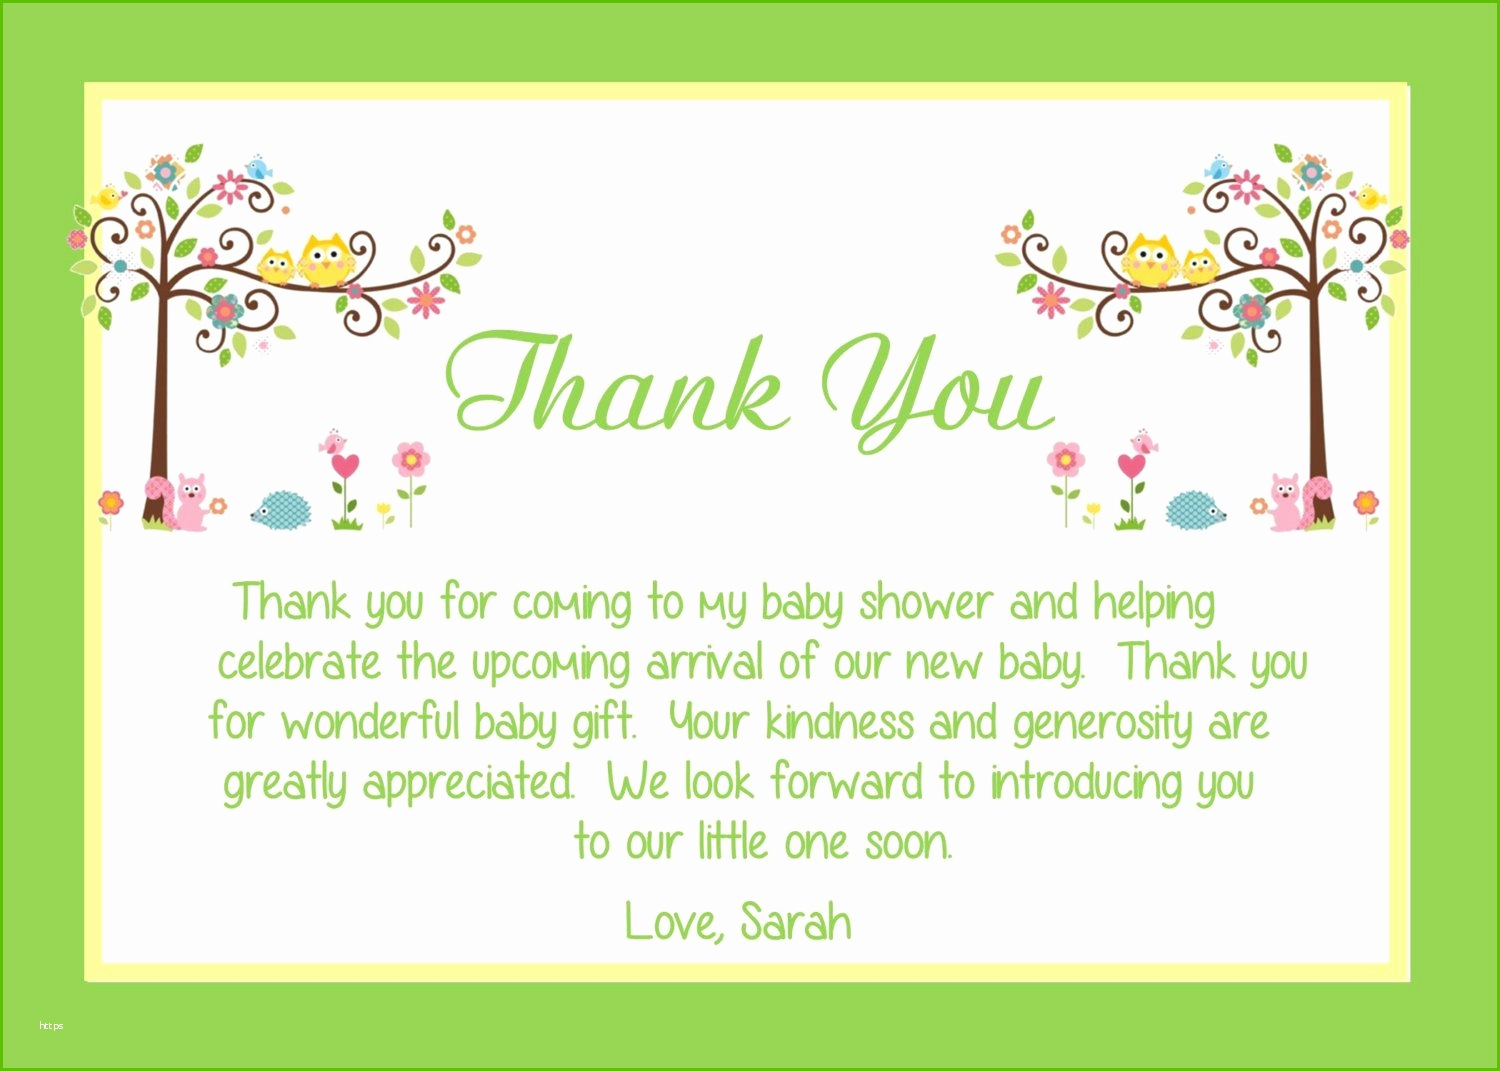 Full Size of Baby Shower:36+ Retro Baby Shower Thank You Wording Image Concepts Baby Shower Favors To Make Baby Shower Bingo Baby Shower Clip Art Comida Para Baby Shower